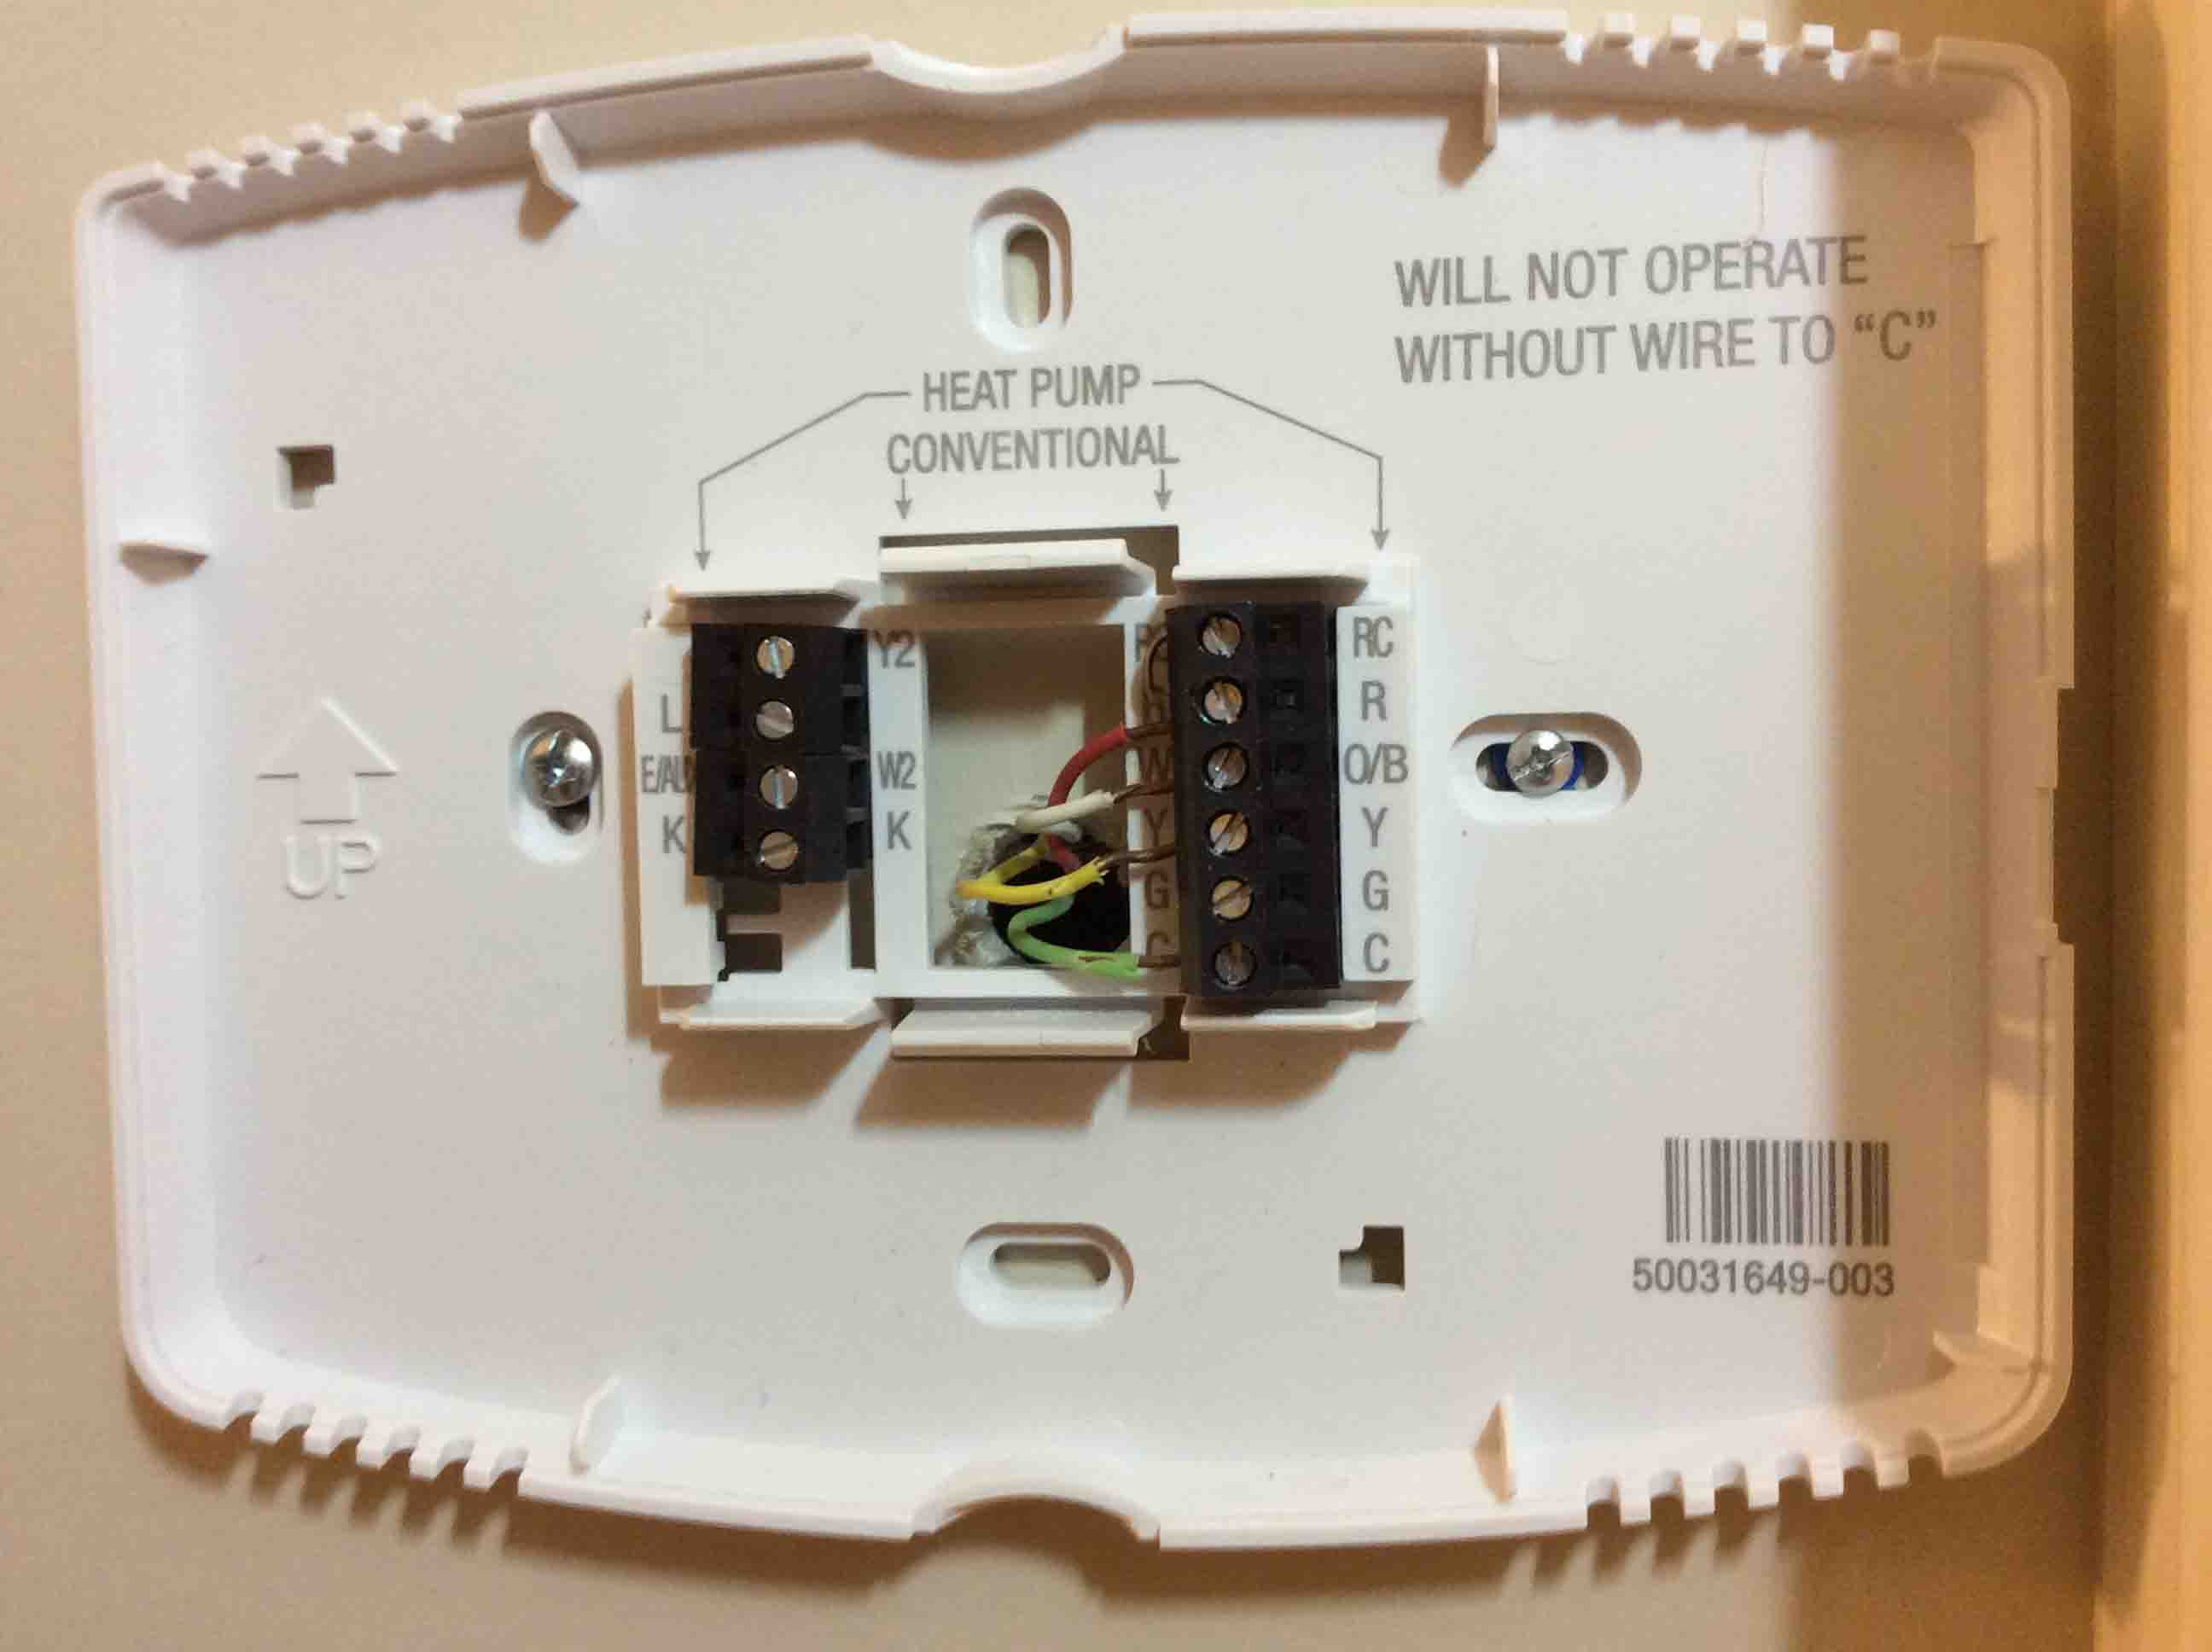 Honeywell smart thermostat wiring instructions rth9580wf toms picture of a honeywell wifi thermostat wall plate showing a typical wiring hookup asfbconference2016 Choice Image